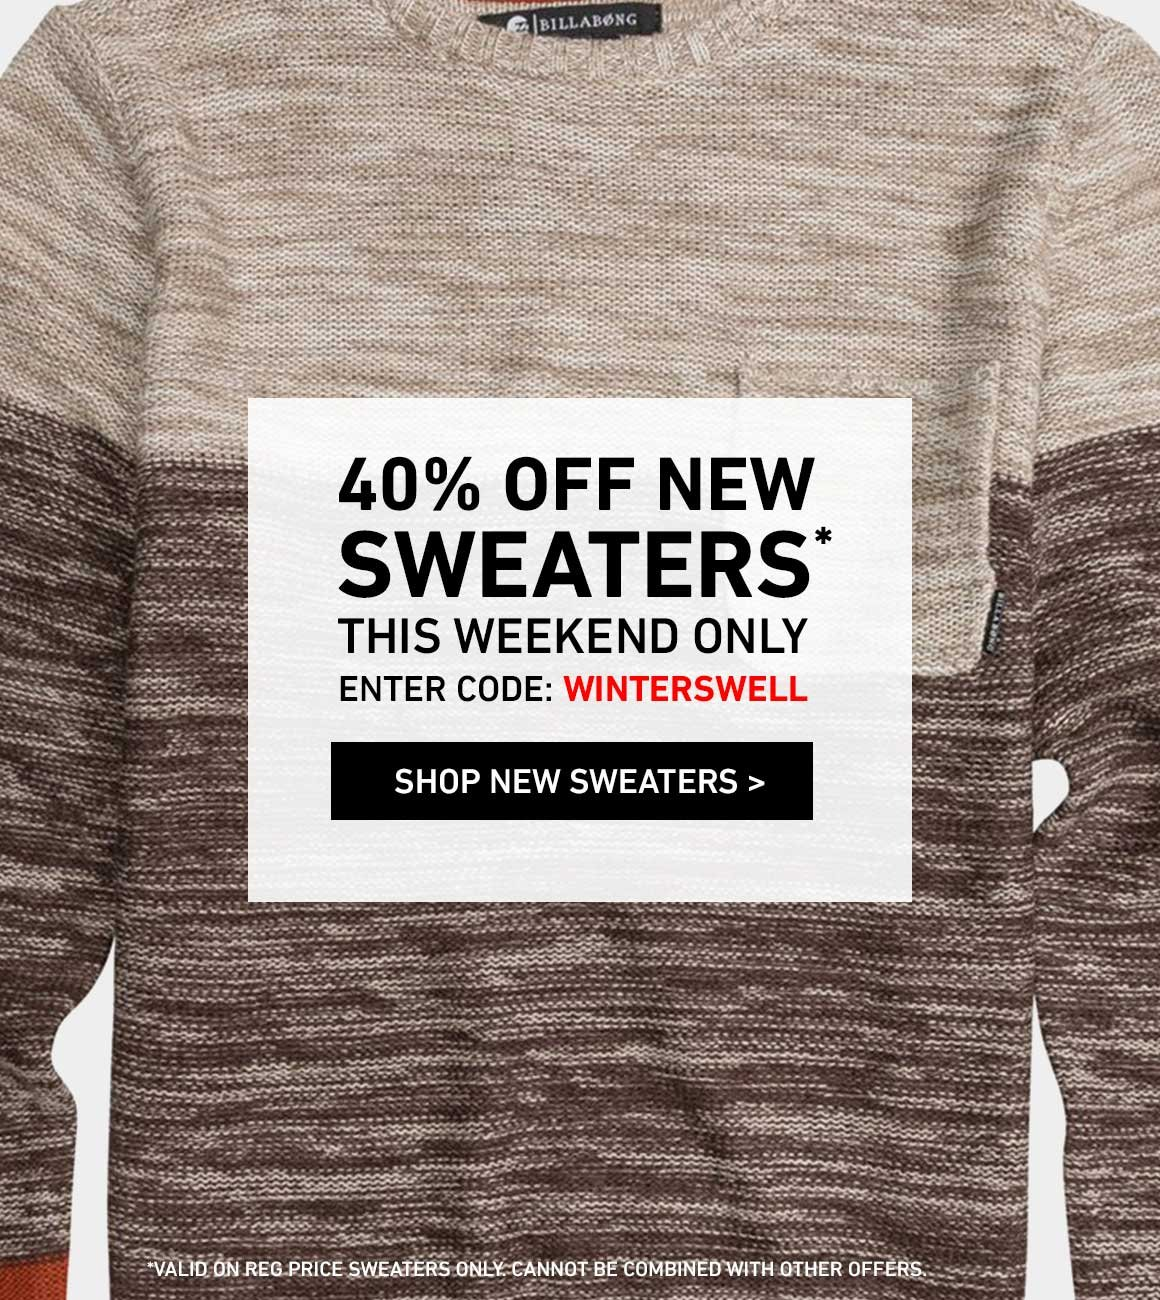 THIS WEEKEND ONLY: 40% Off New Sweaters! Enter Code: WINTERSWELL